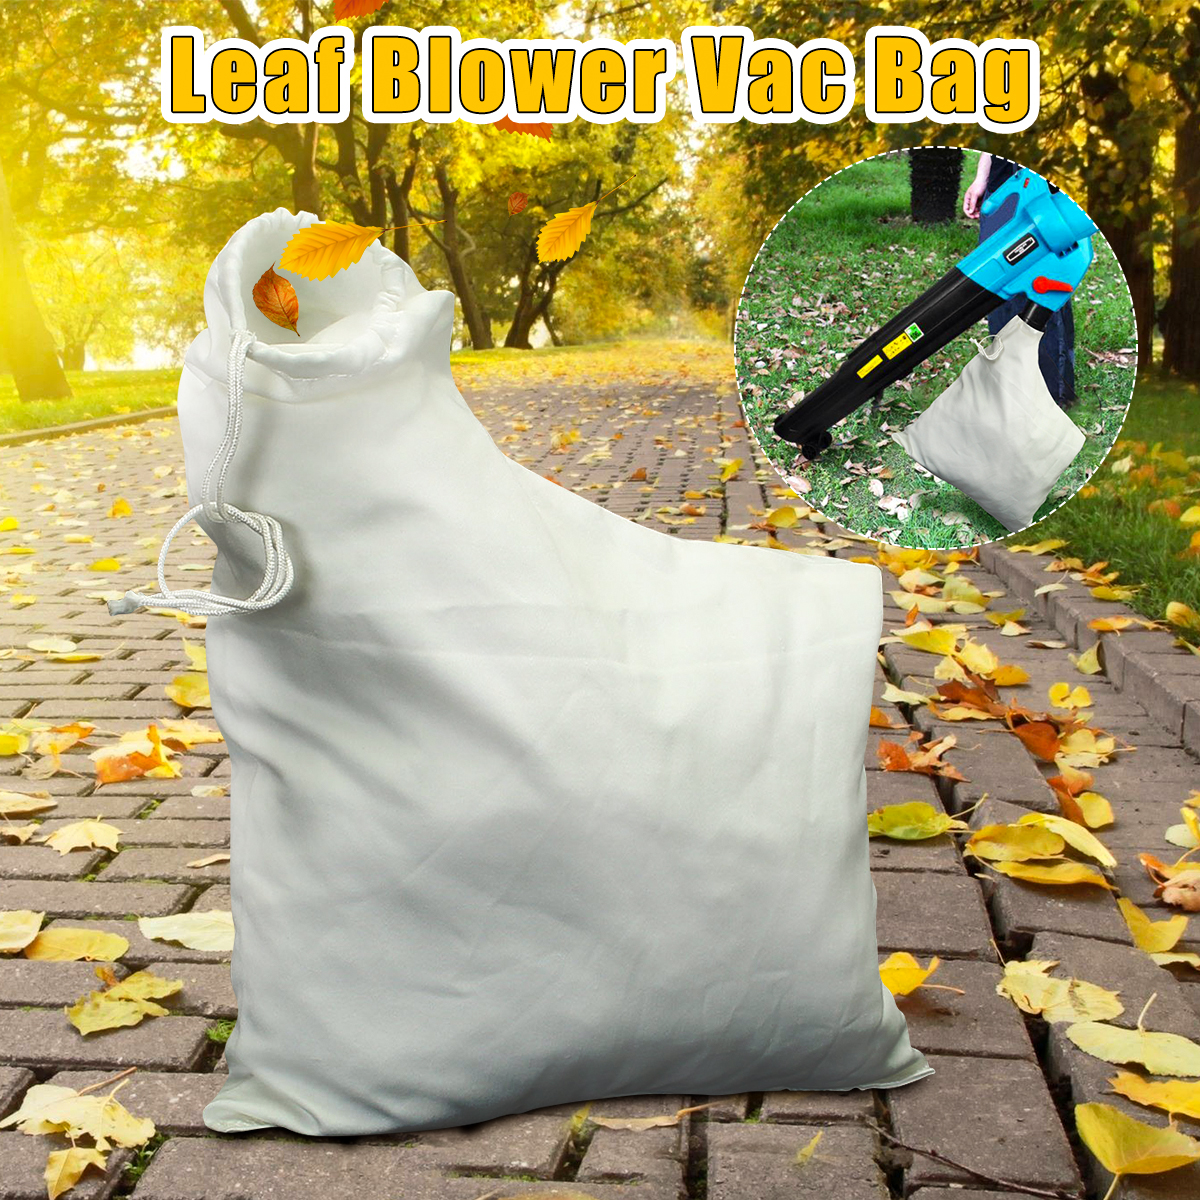 Leaf Blower Vacuum Bag Fit For Wee D Eater Barracuda 2595 Mulcher Lawn Yard Shredder Garden Tool Storage Bag Accessories